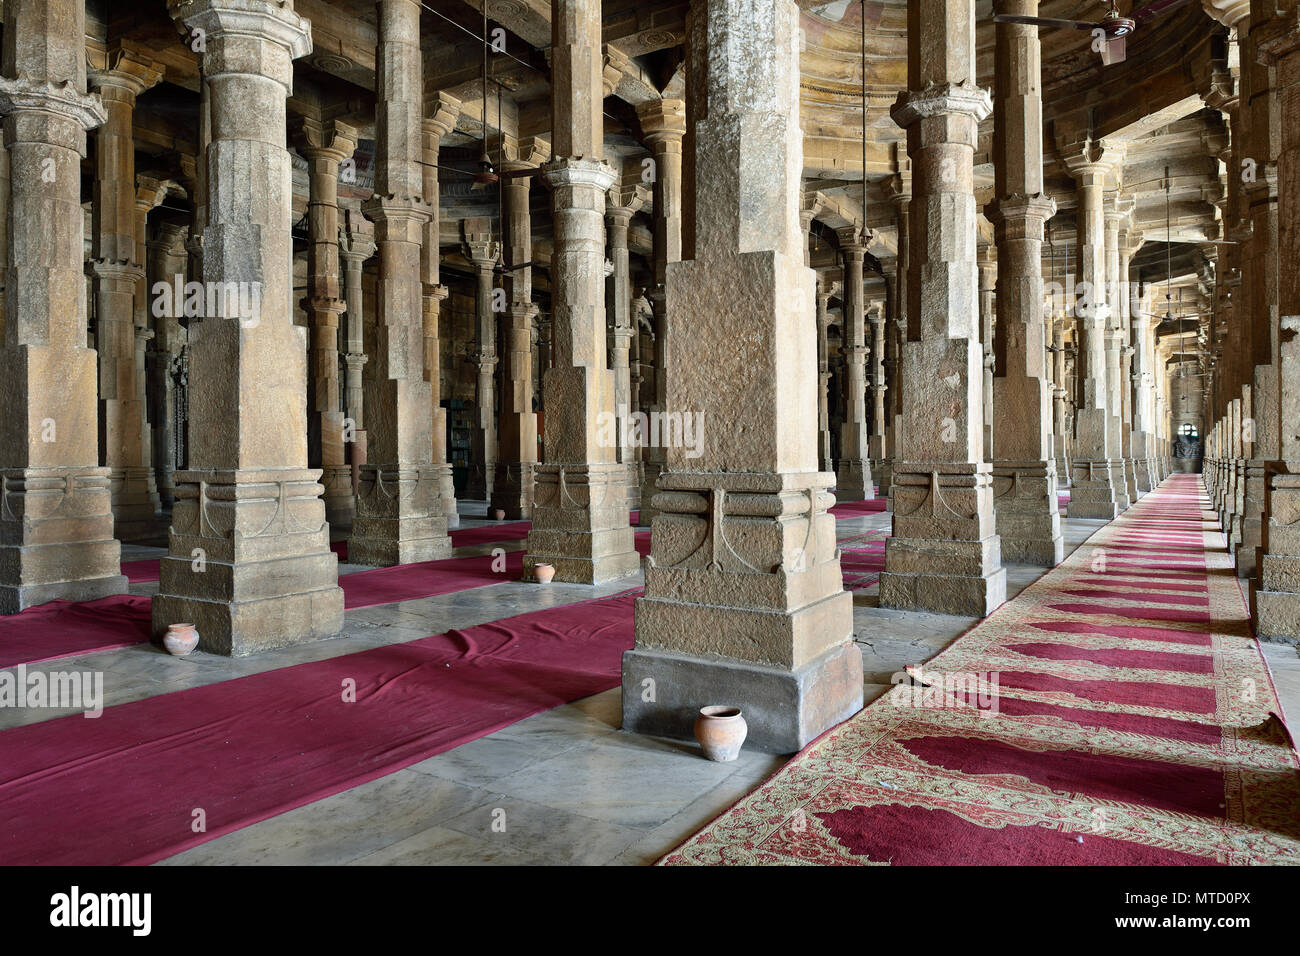 Jama Masijd mosque is the most splendid mosque of Ahmedabad city in India - Stock Image